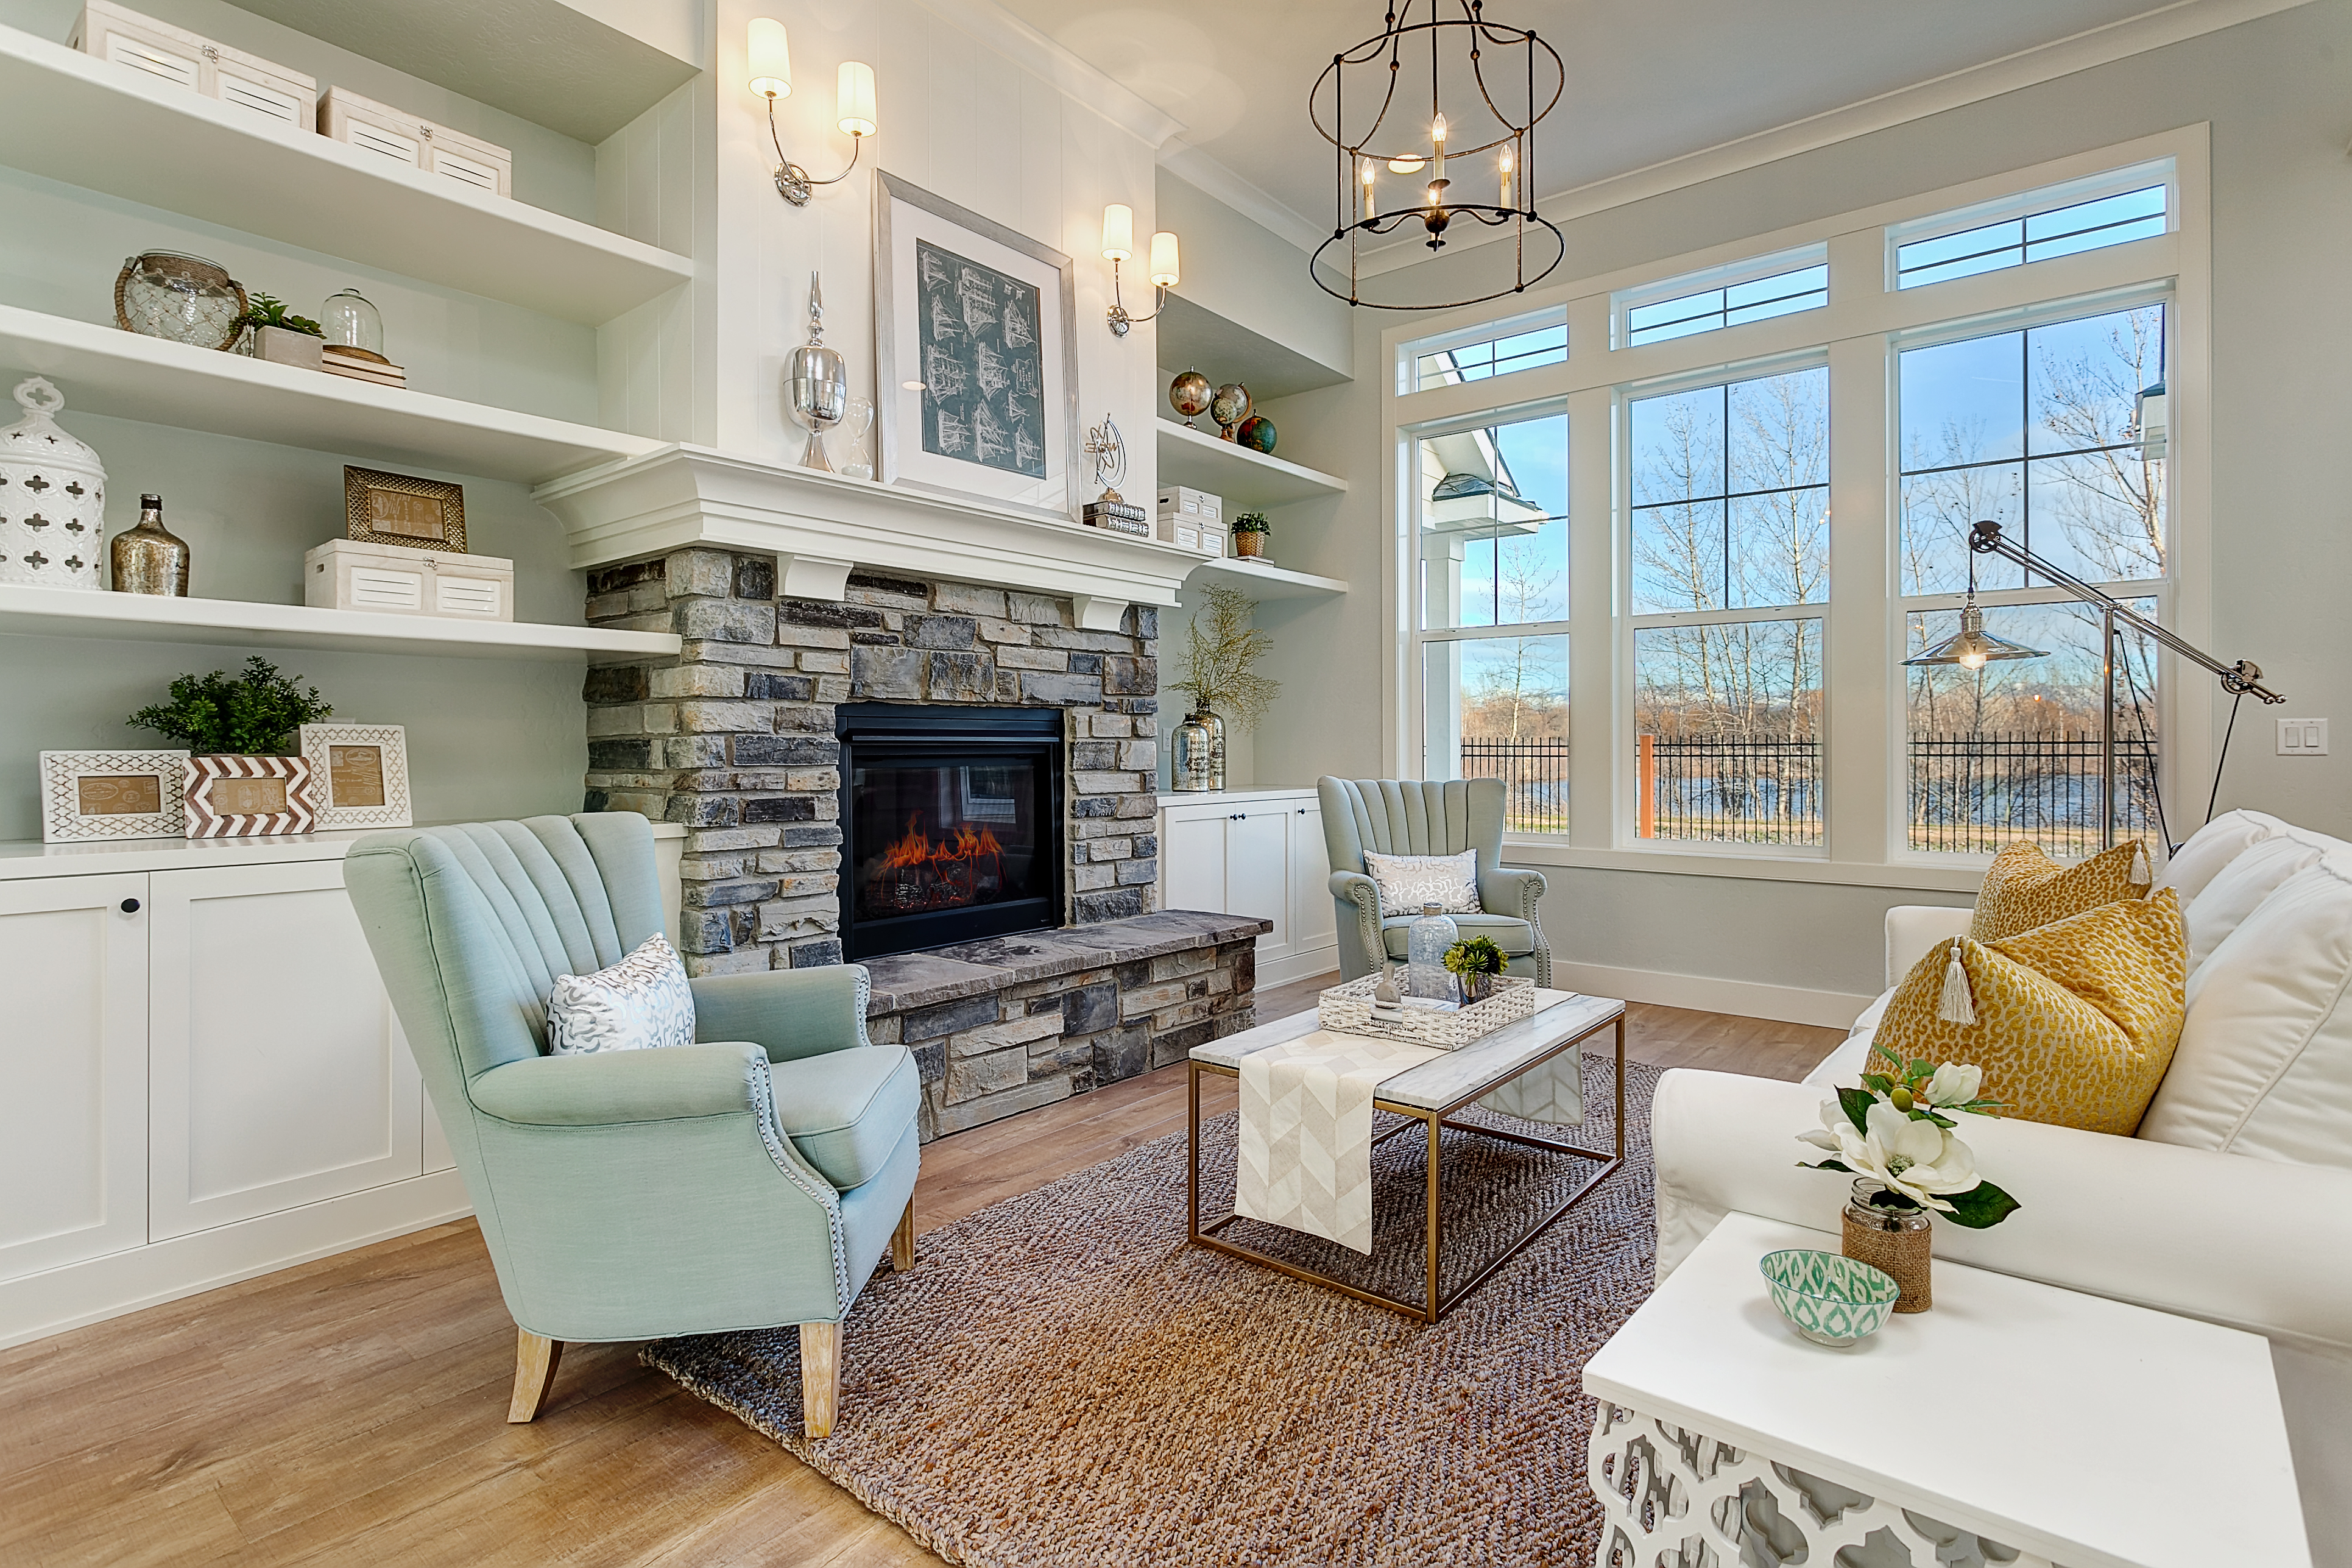 Clark and co homes the hampton for Design homes angela clark